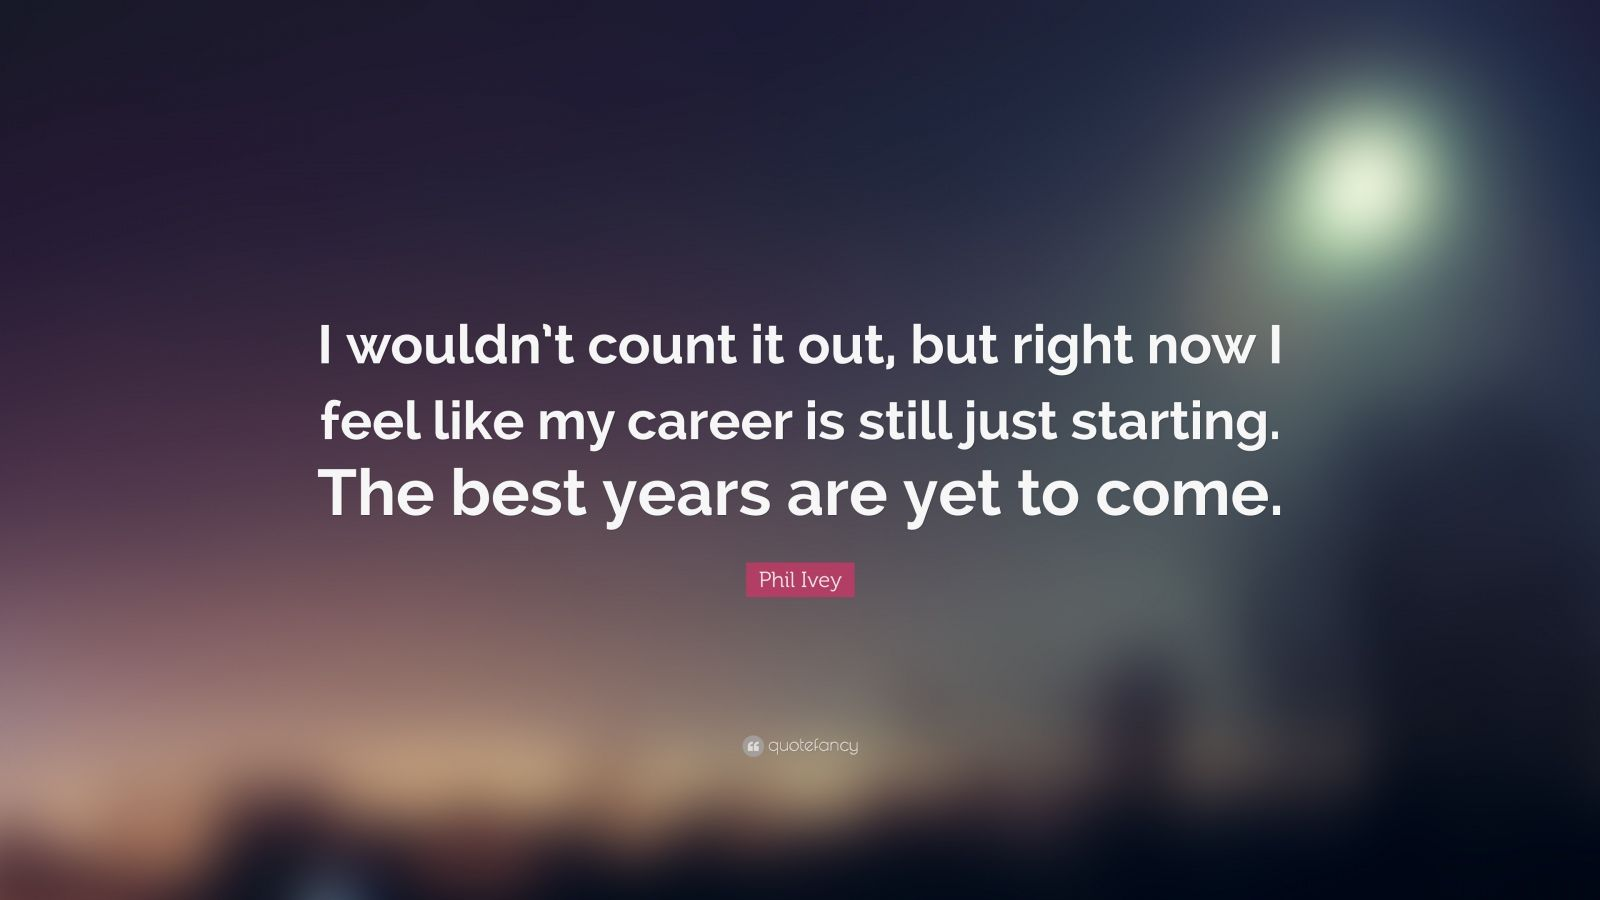 """Phil Ivey Quote: """"I wouldn't count it out, but right now I feel like my career is still just starting. The best years are yet to come."""""""